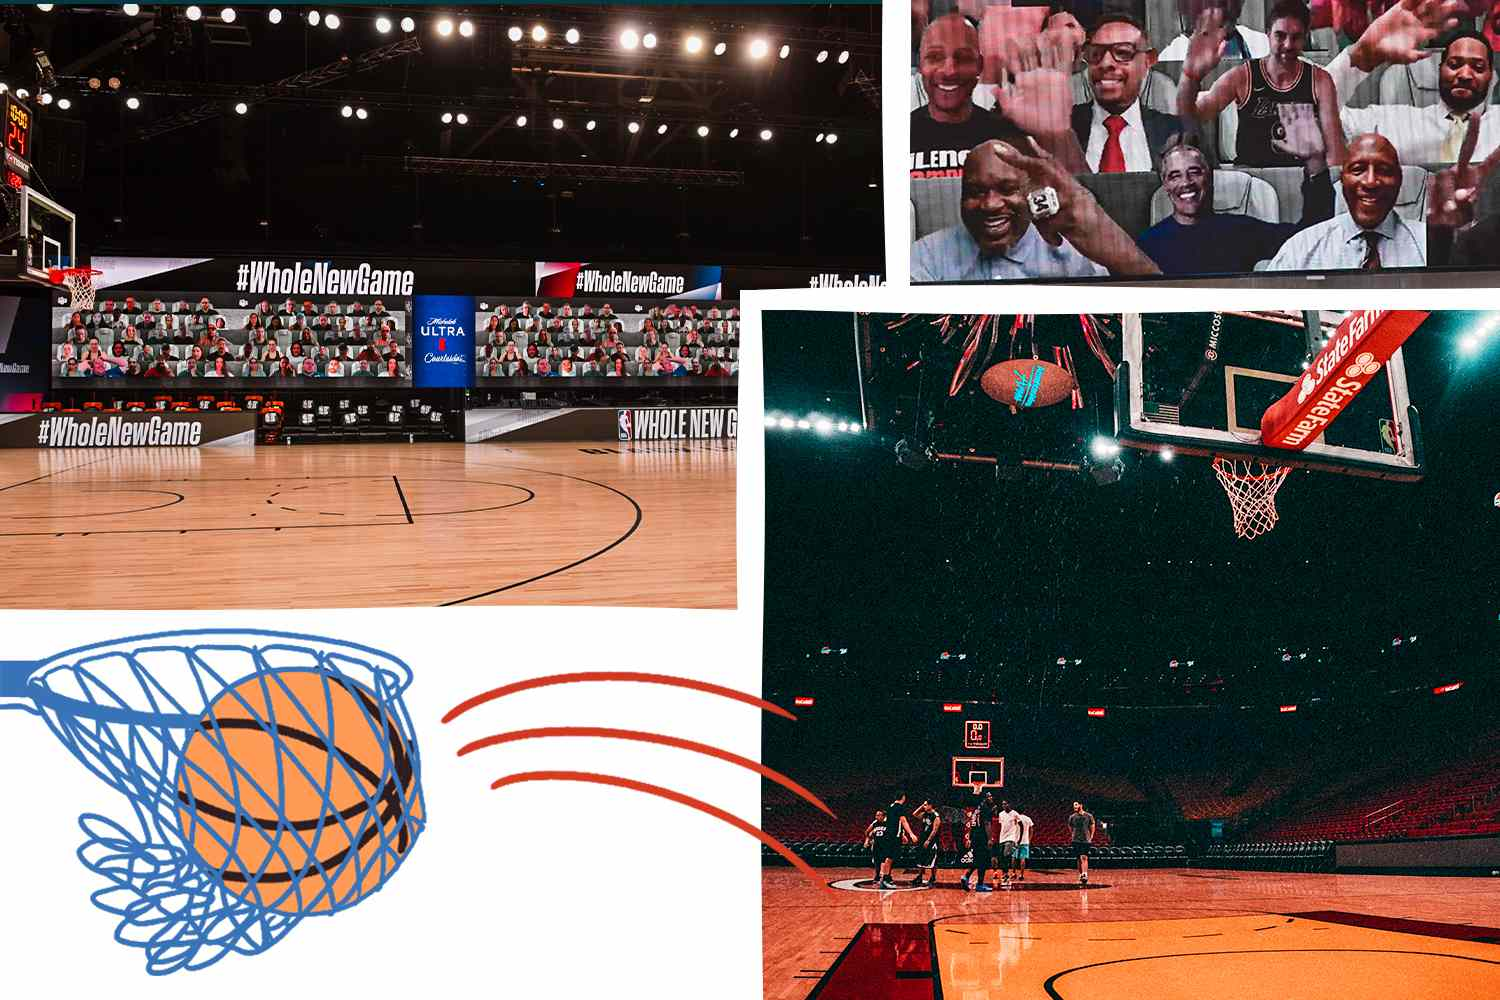 Collage of photos of NBA playing in a the Bubble they created